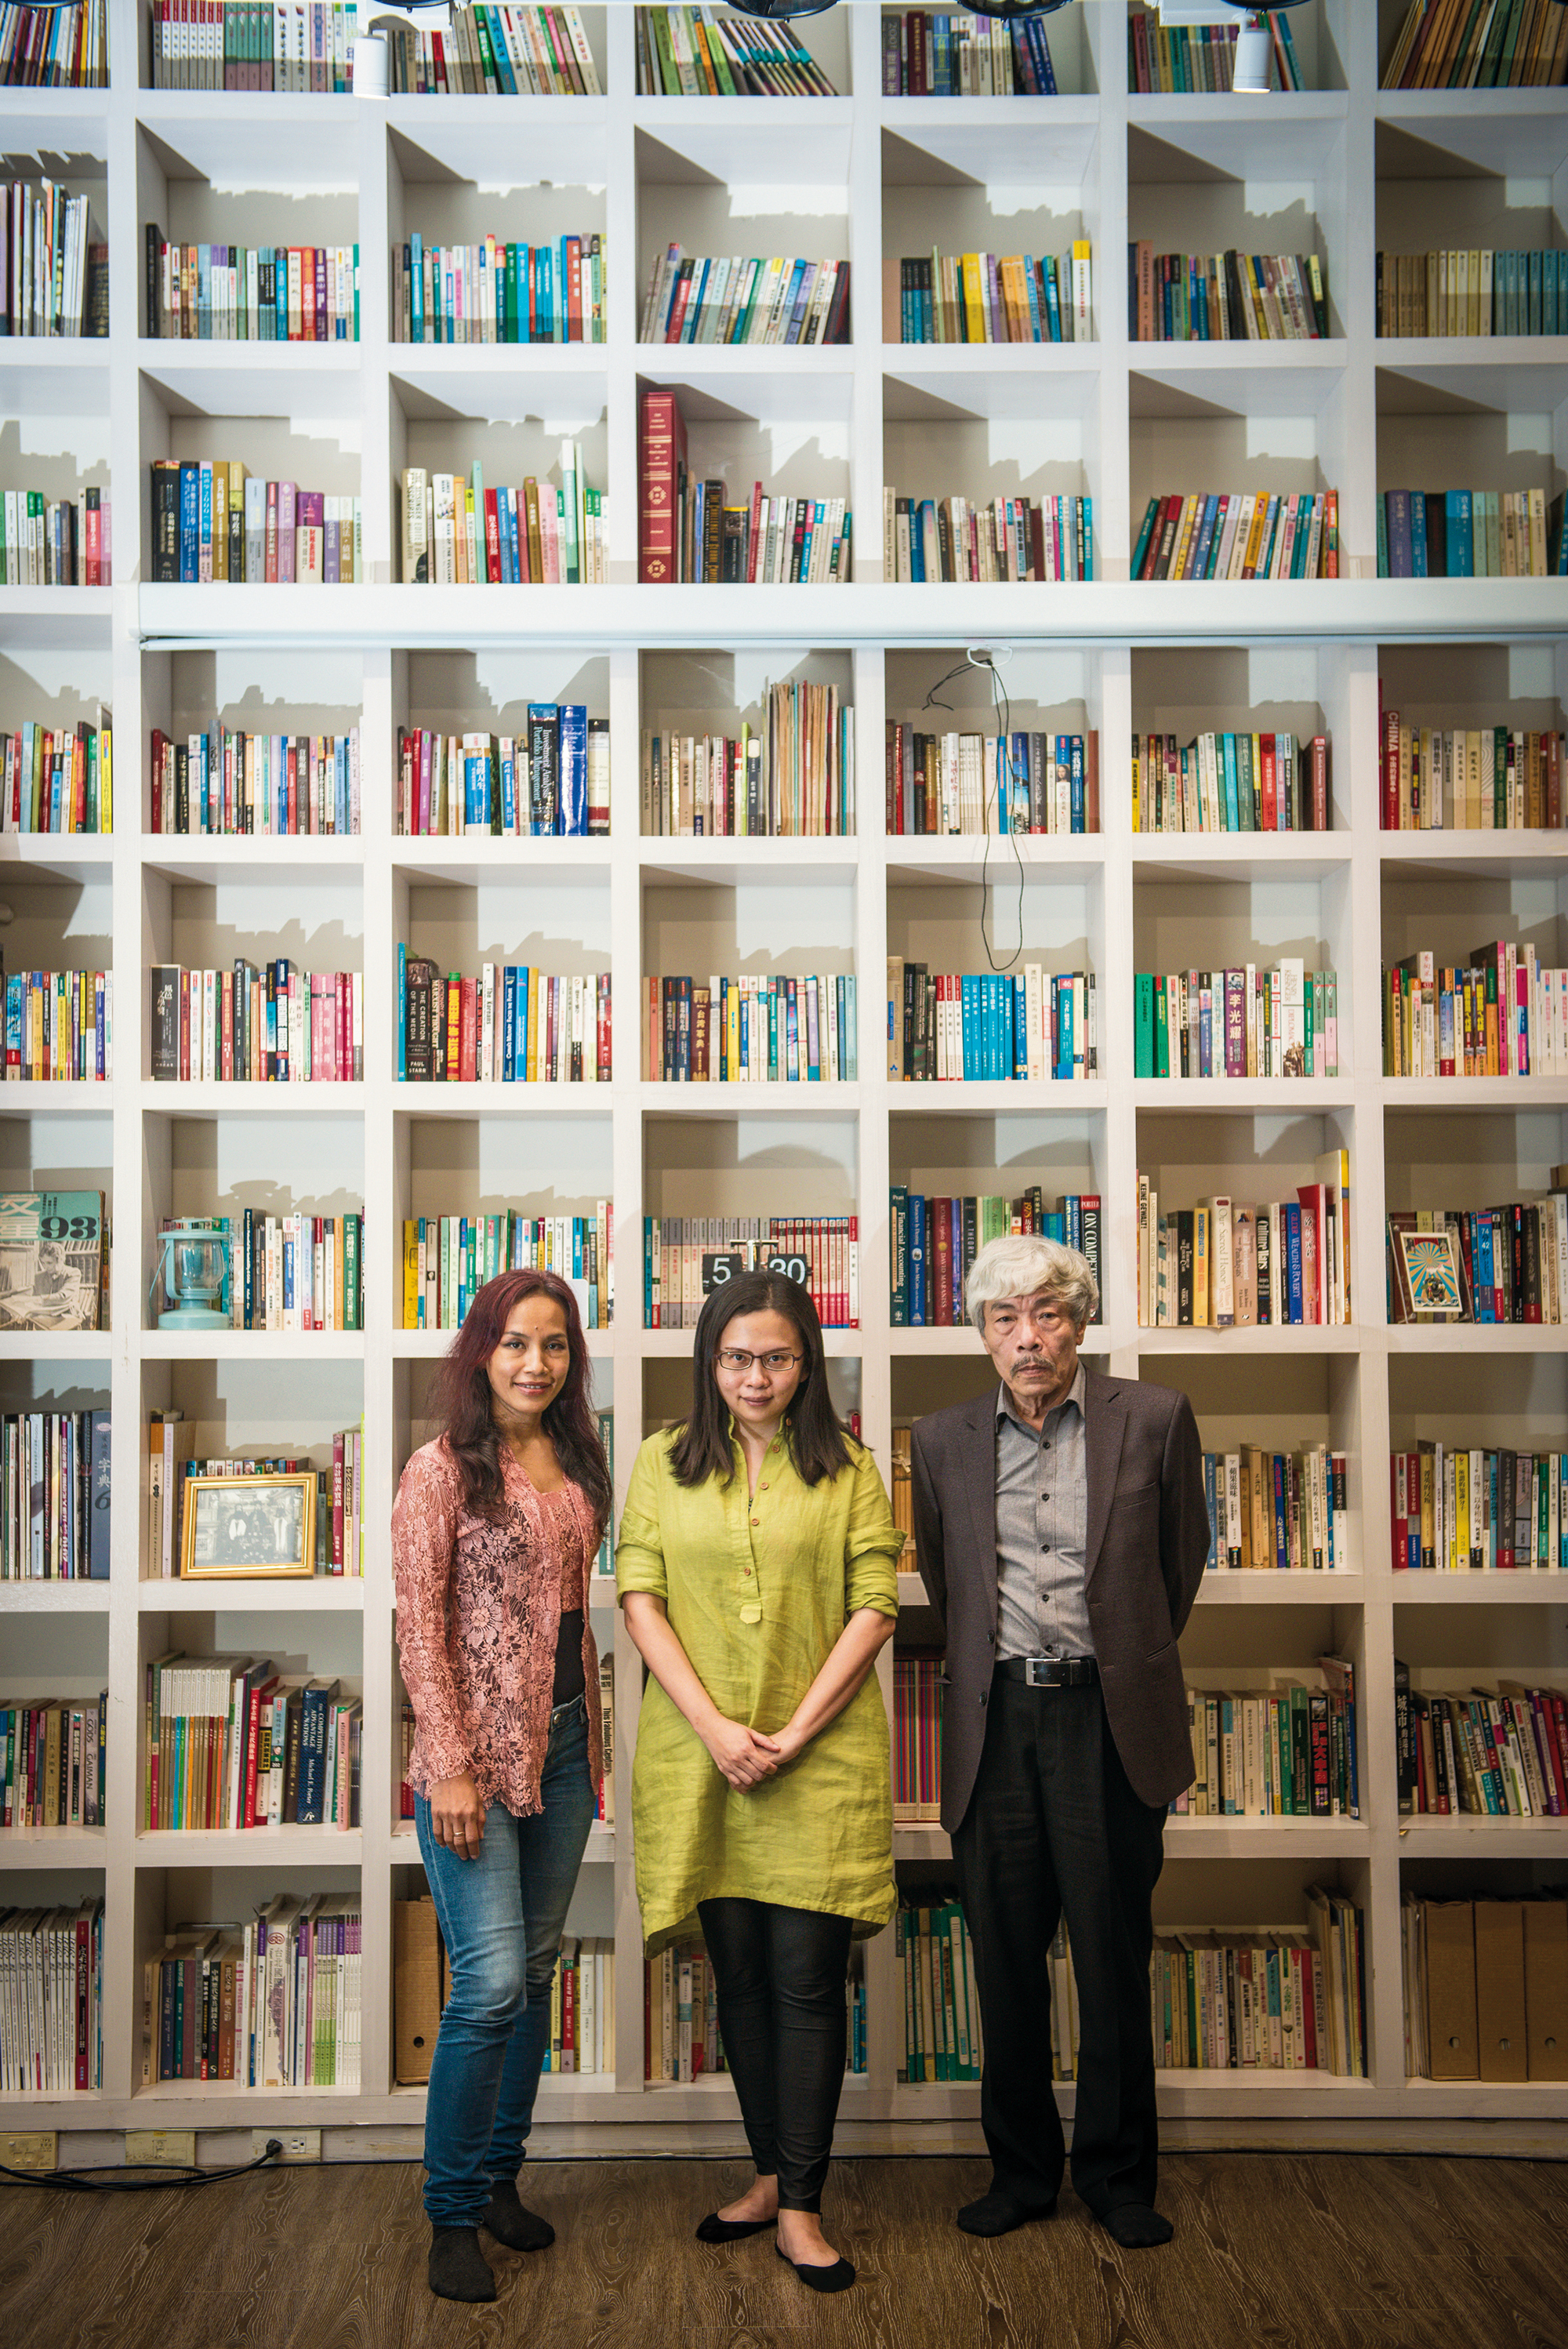 (left to right) Indonesian writer Ayu Utami, Taiwanese writer Fang Hui-chen and Vietnamese writer Bao Ninh. (venue courtesy of Thinker's Theater, photo by Chuang Kung-ju)